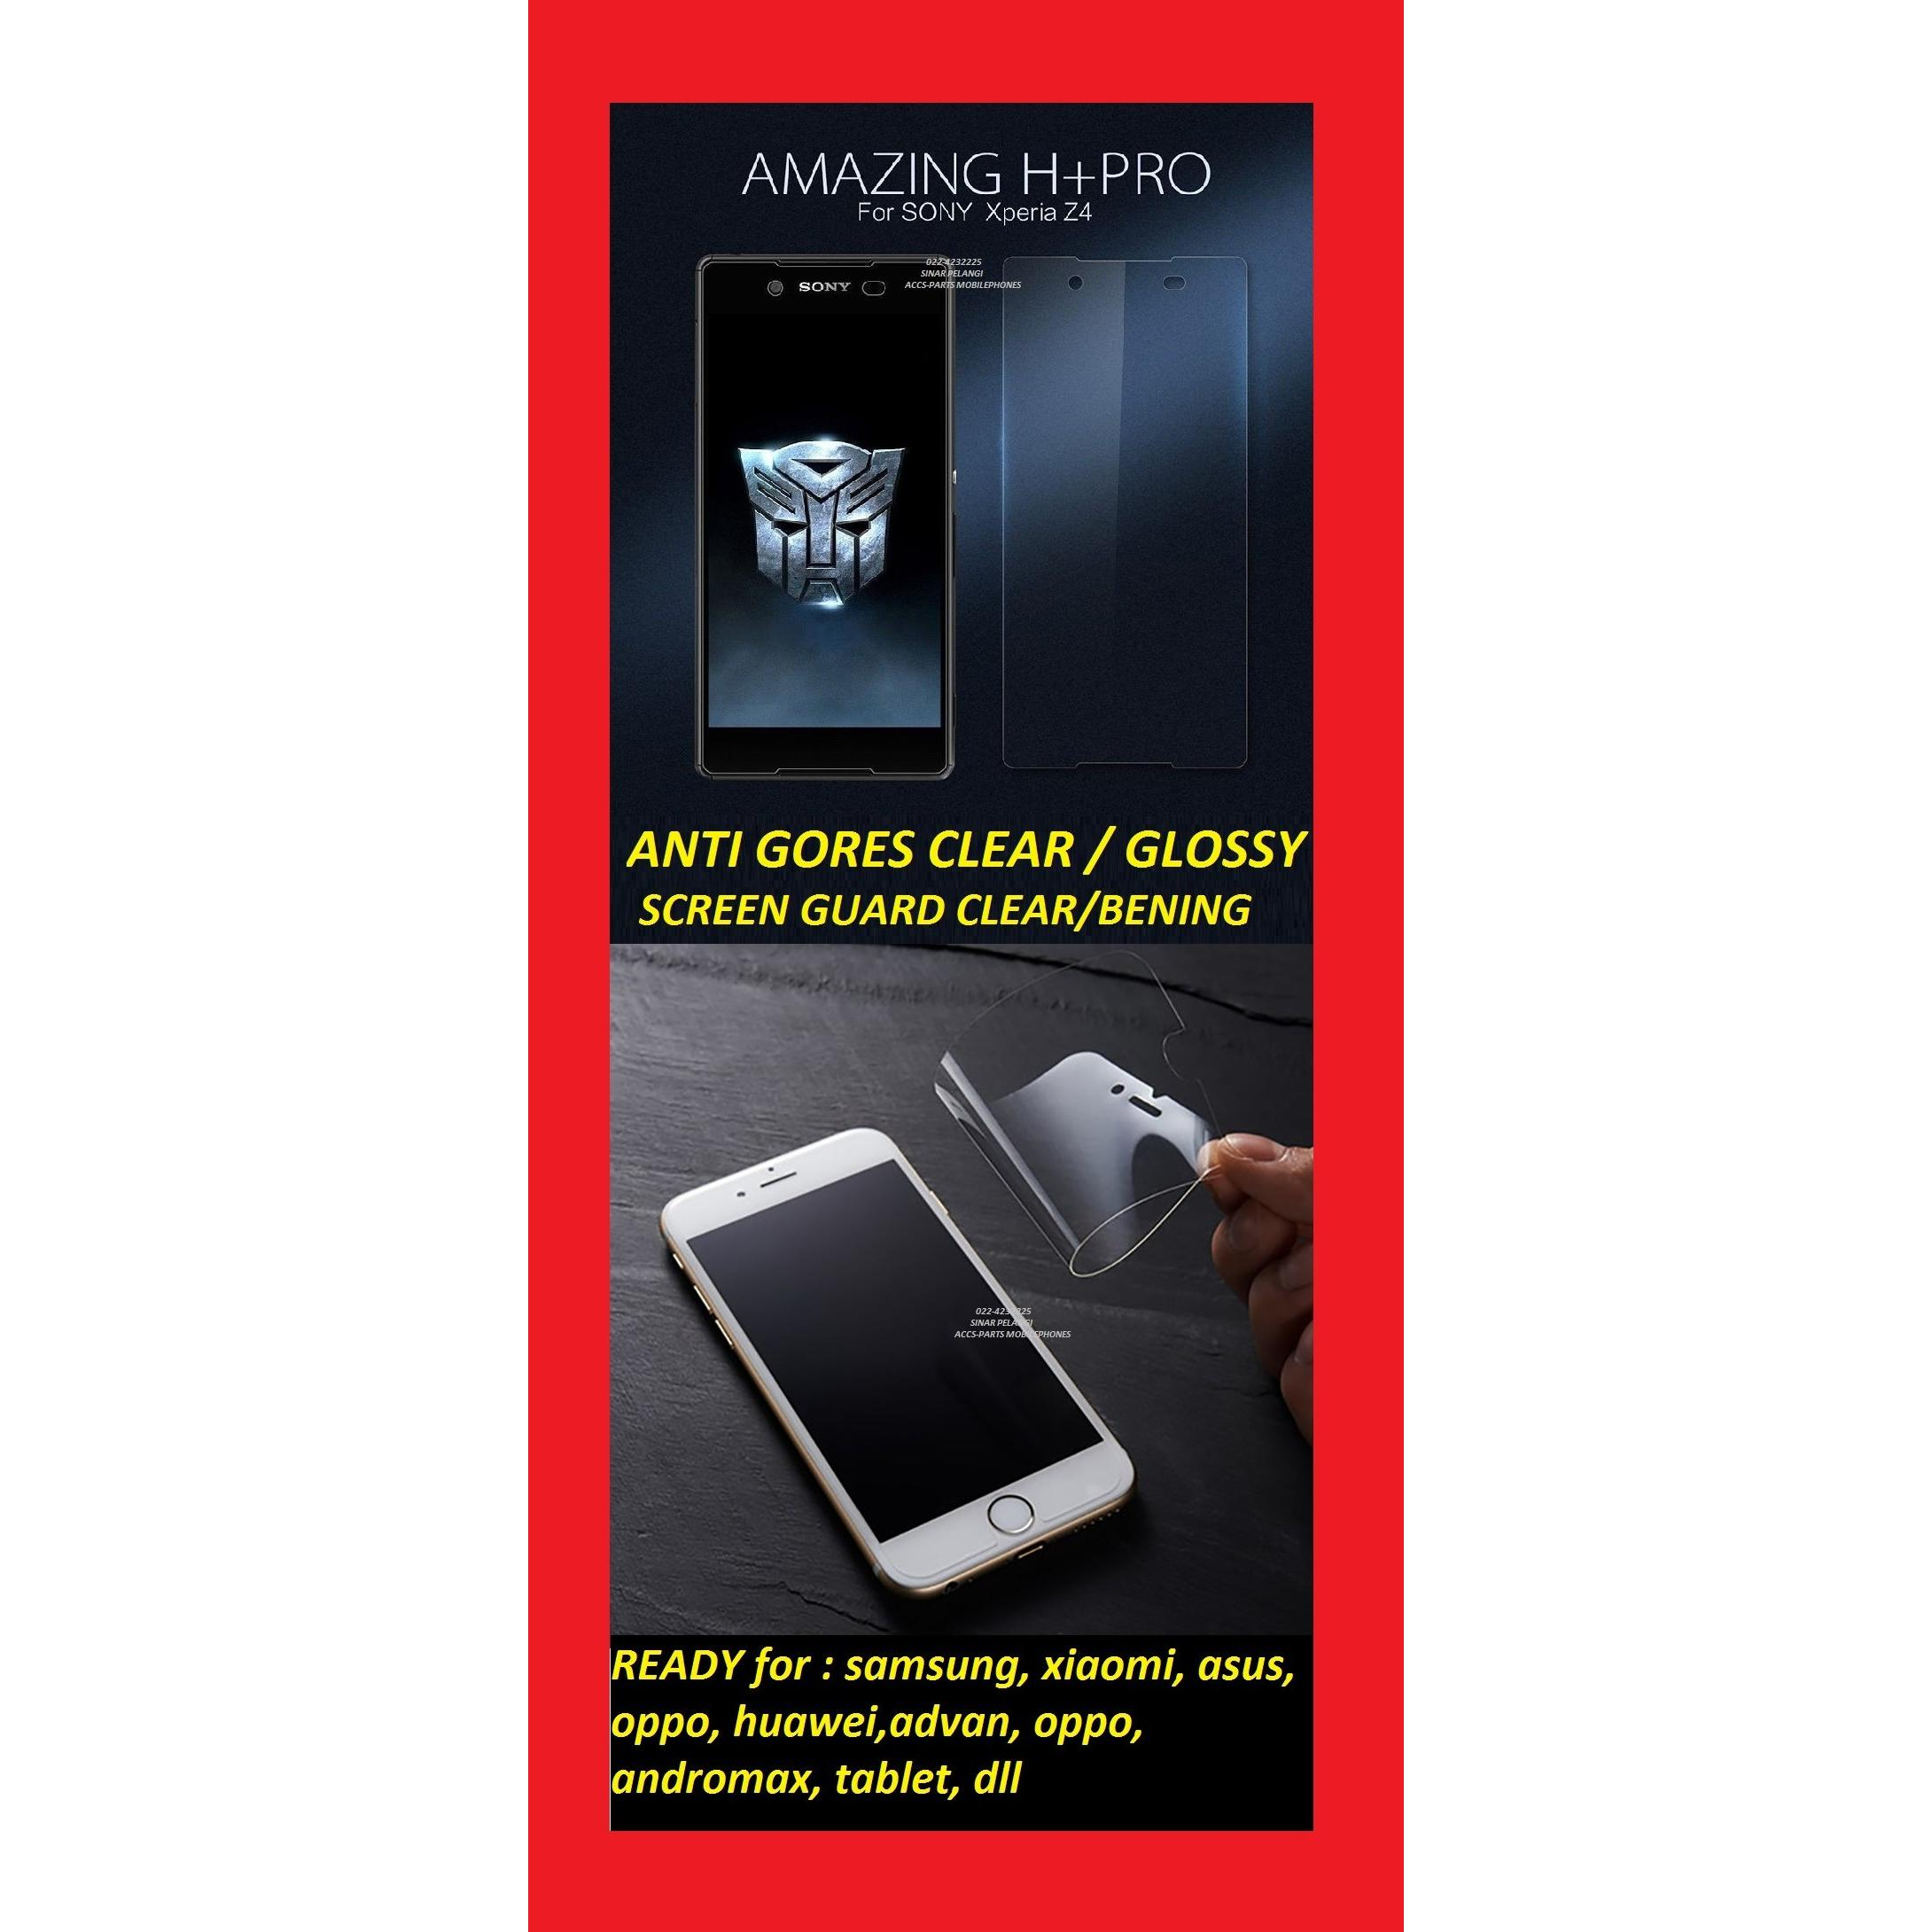 ANTI GORES CLEAR GLOSSY TRANSPARANT OPPO F1 SELFIE A35 FLAT SCREEN GUARD PROTECTOR 904521